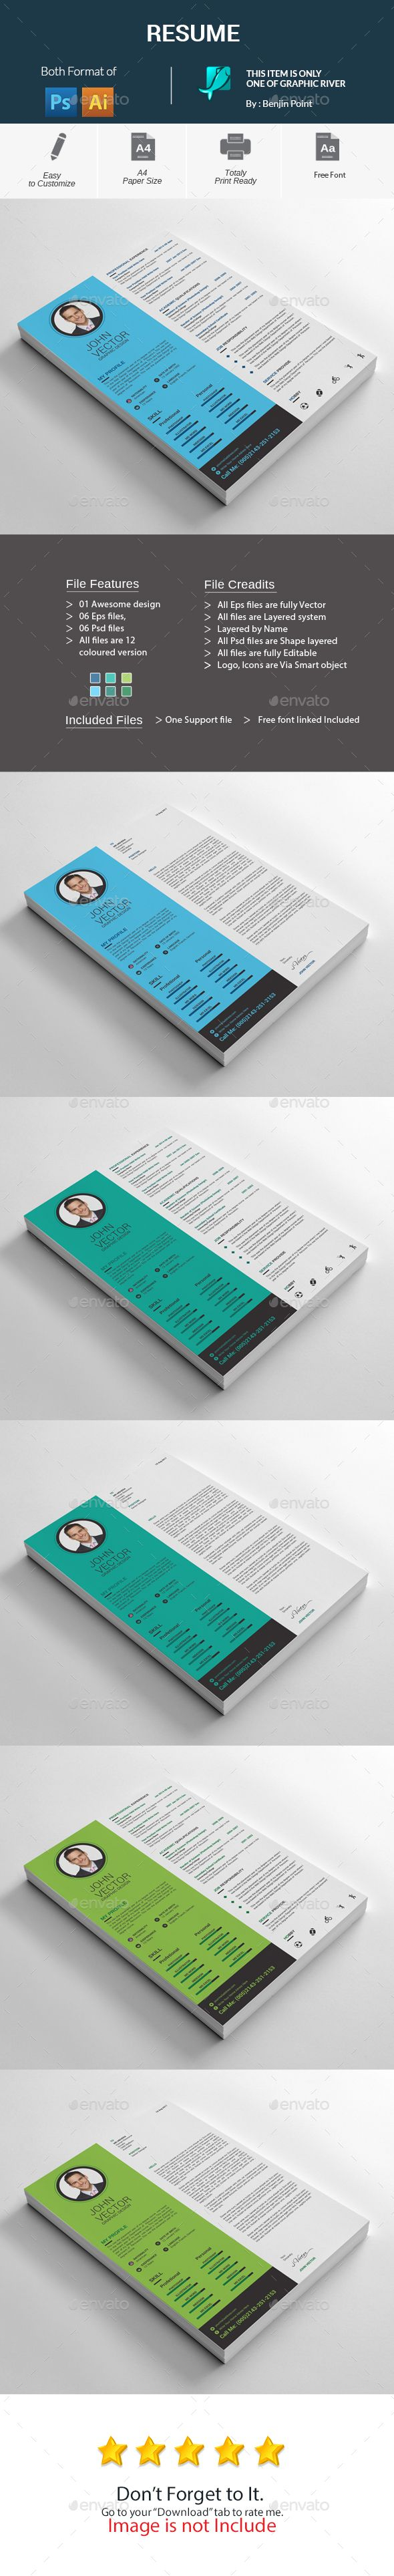 20 best Resume images on Pinterest | Resume templates, Cv template ...